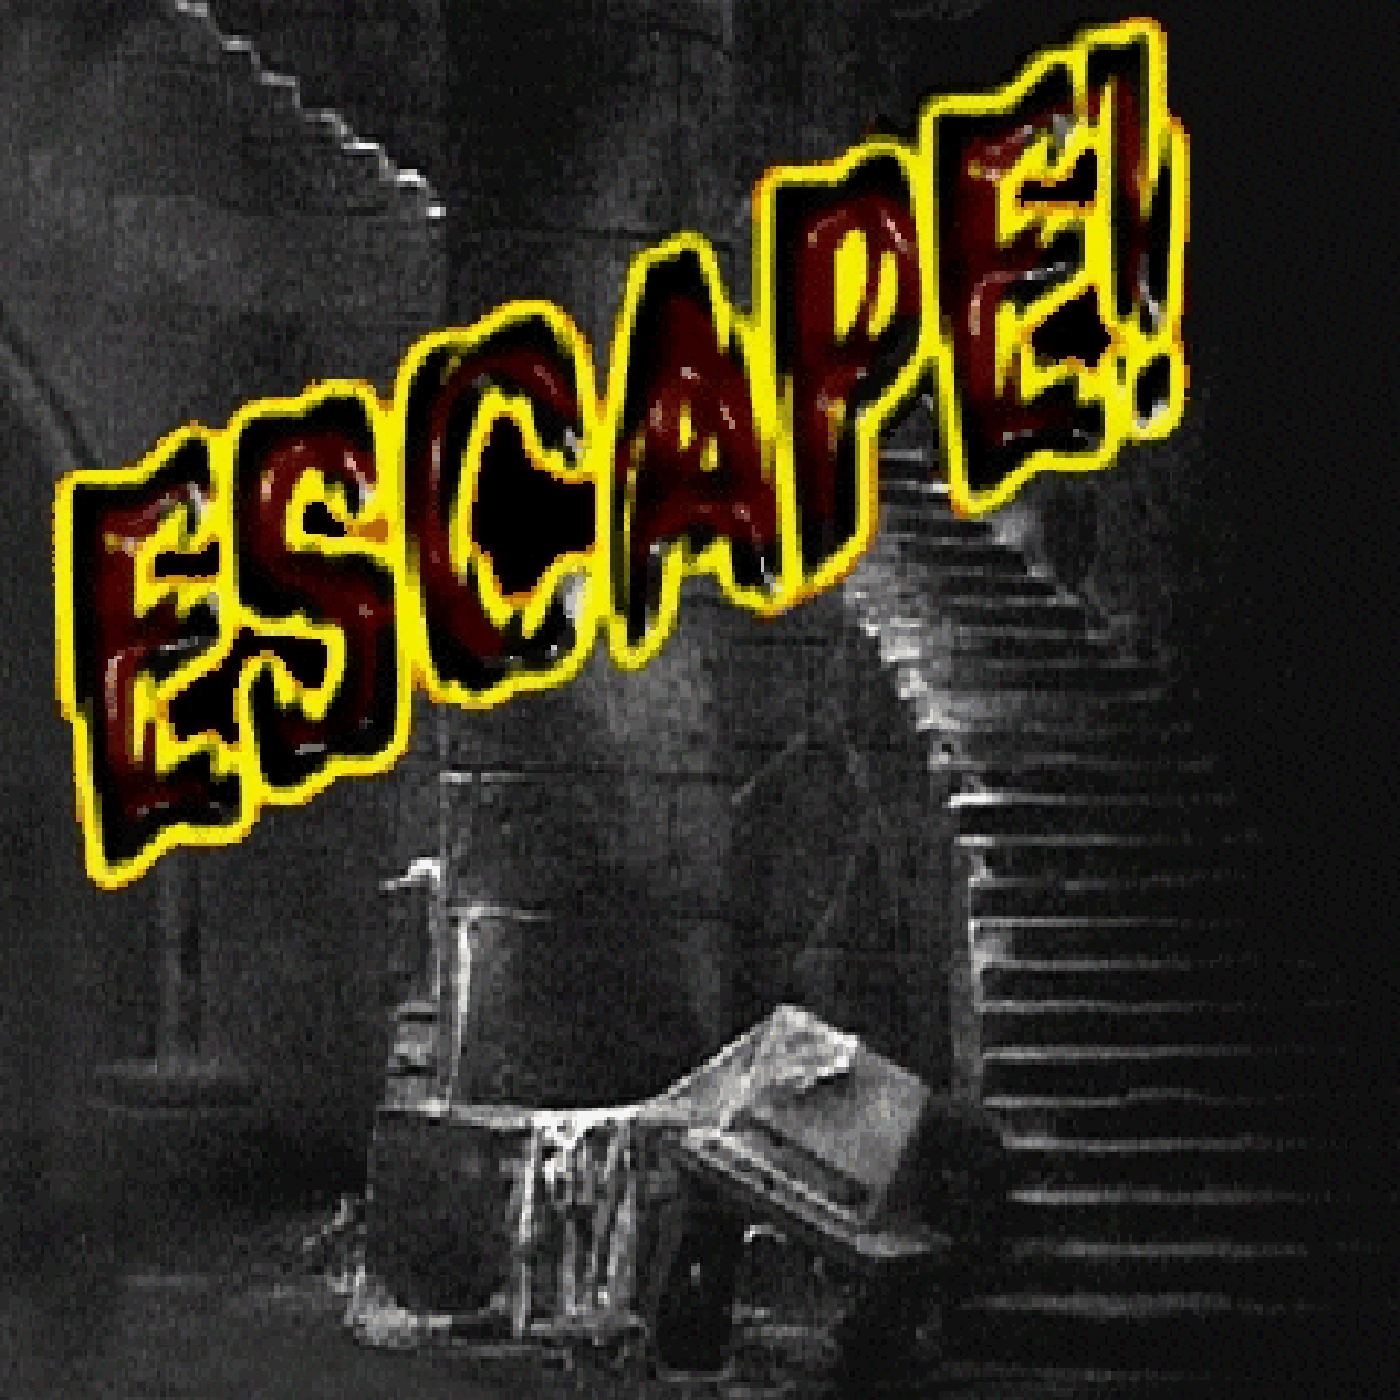 Escape - The Most Danerous  Game